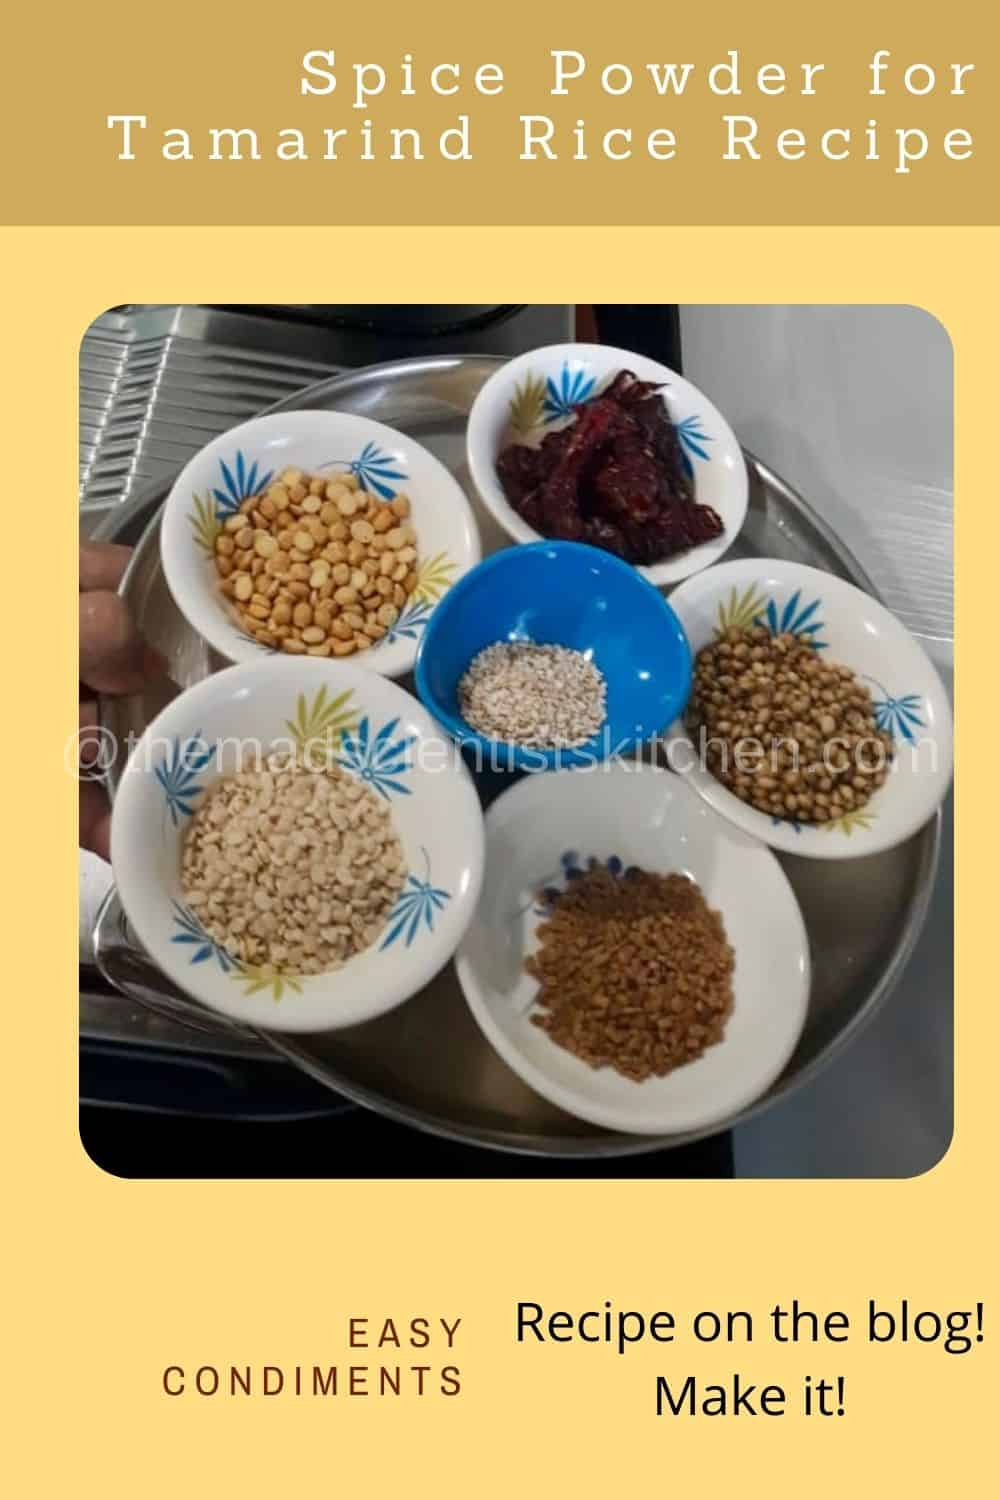 Spices you will need to make the Tamarind Rice Spice powder.